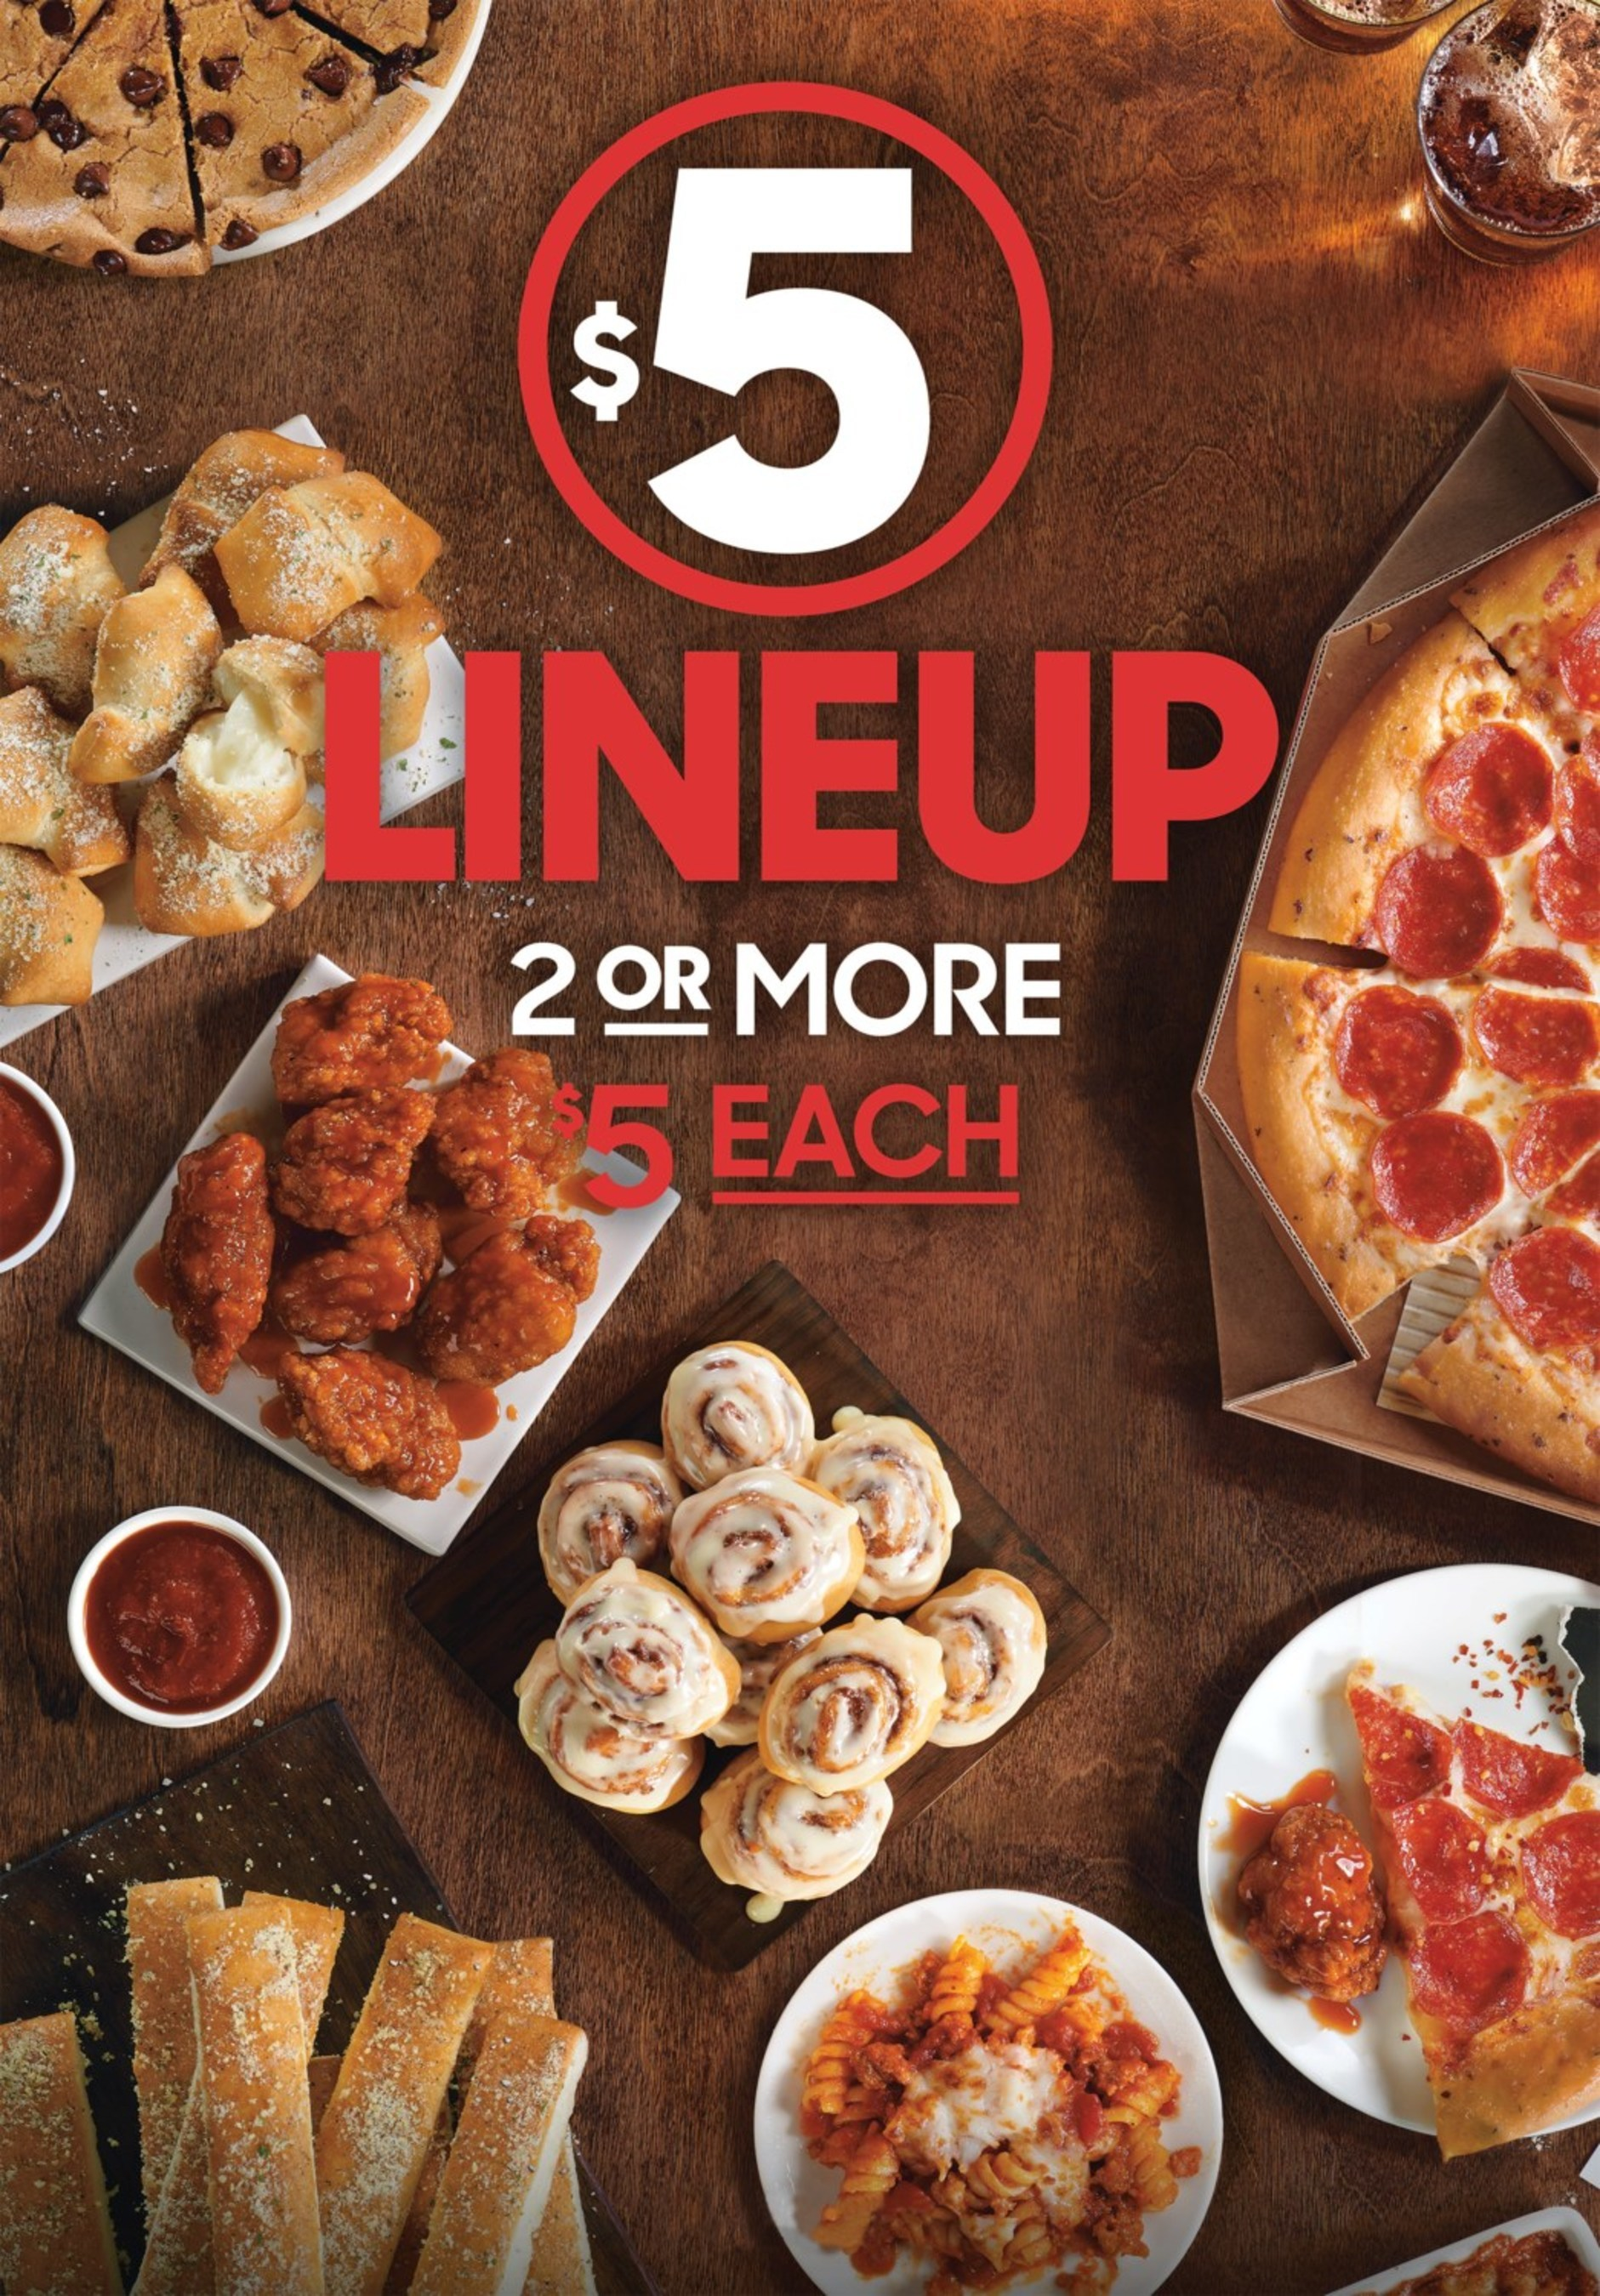 Pizza Hut Launches 5 Lineup Stacked With Pizzas And Other Craveable Menu Options